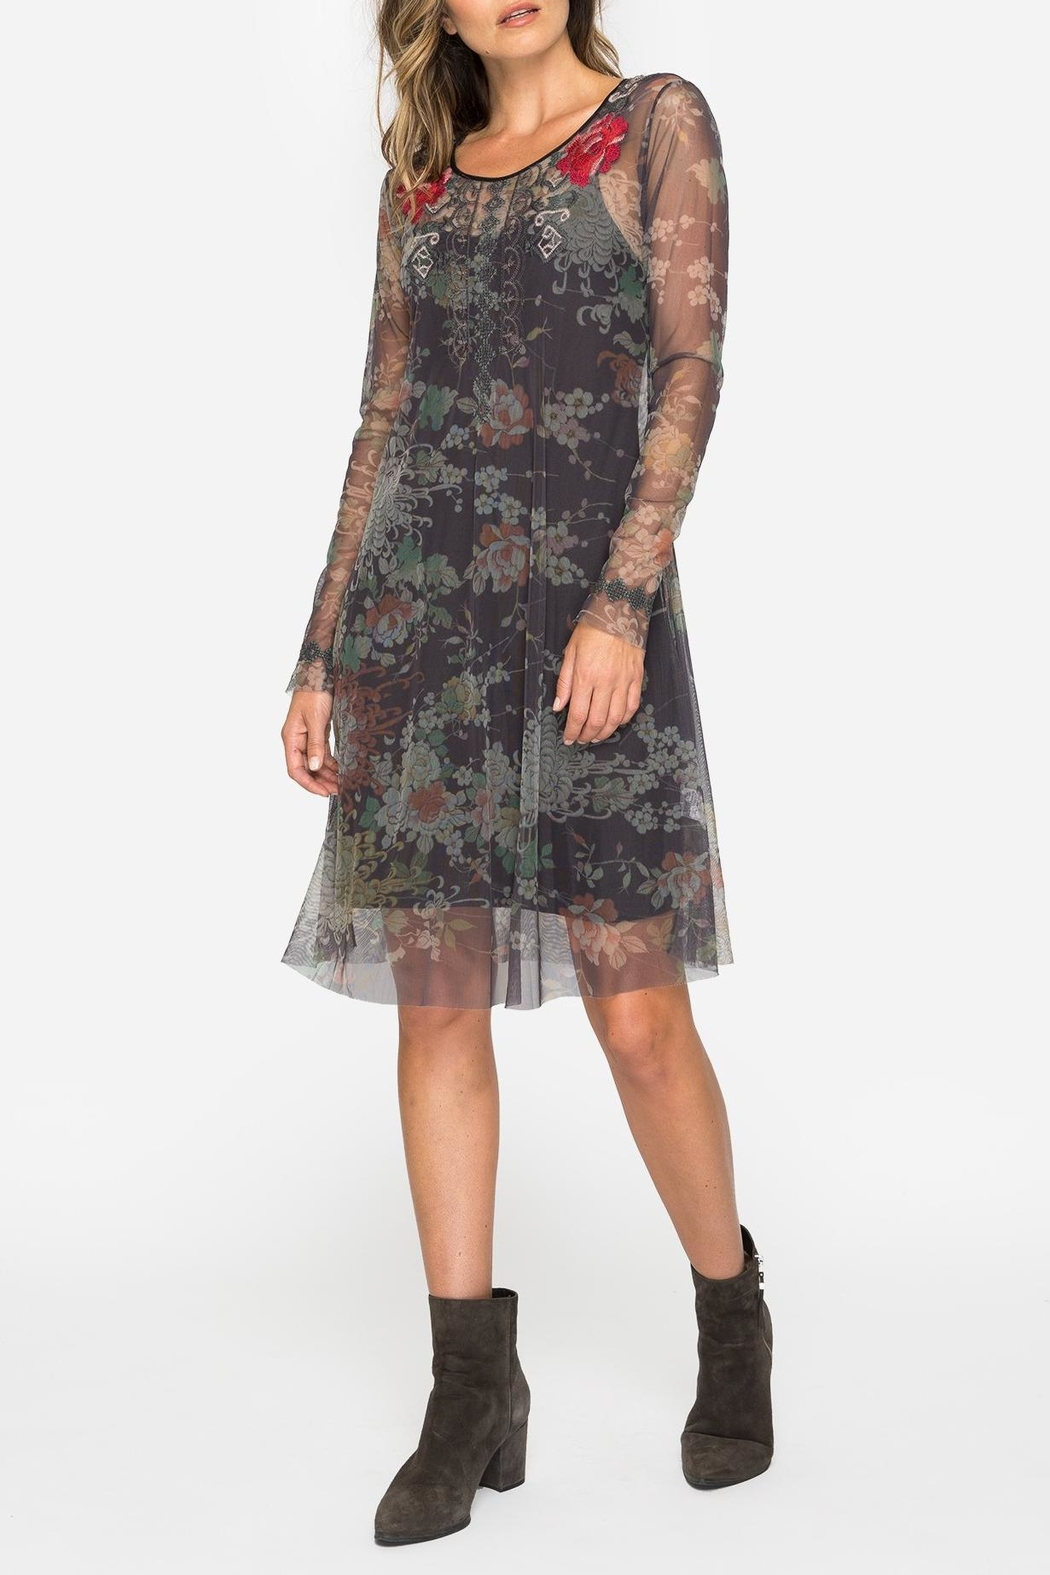 Johnny Was Junip Mesh Dress - Front Cropped Image